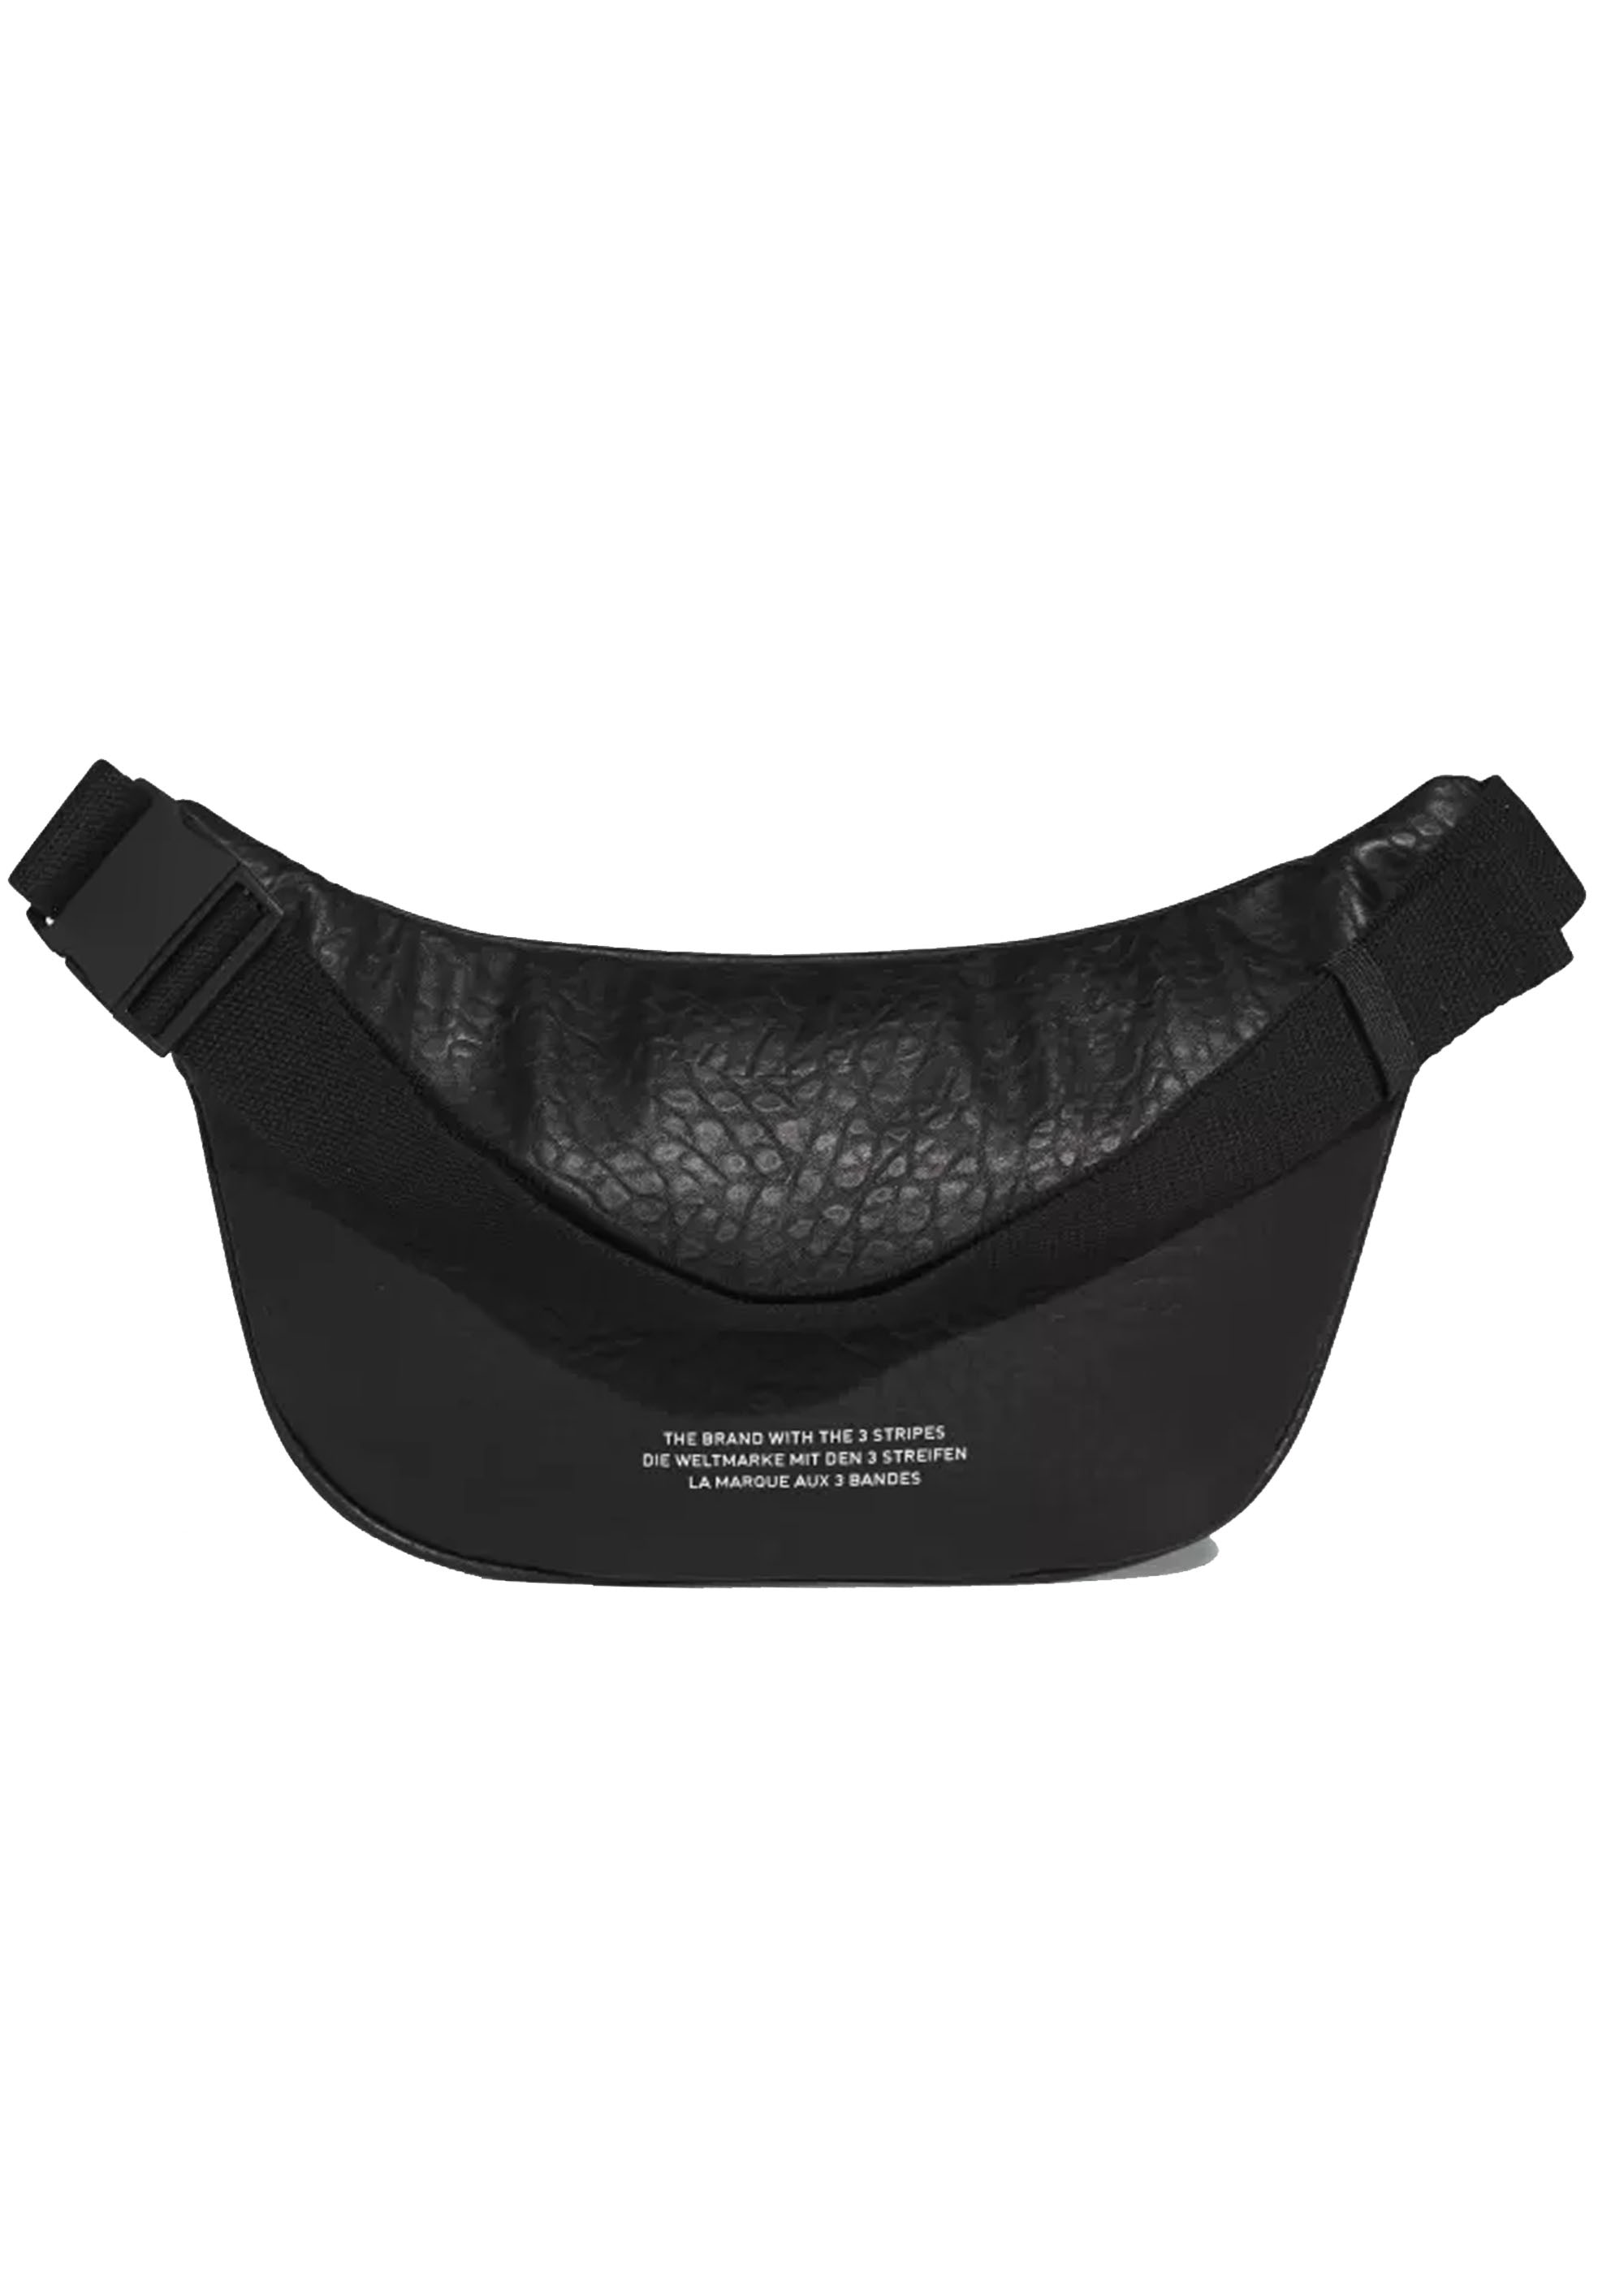 adidas Originals Apparel Bum Bag - Black - Bags from Triads UK 7bca4386f8d34